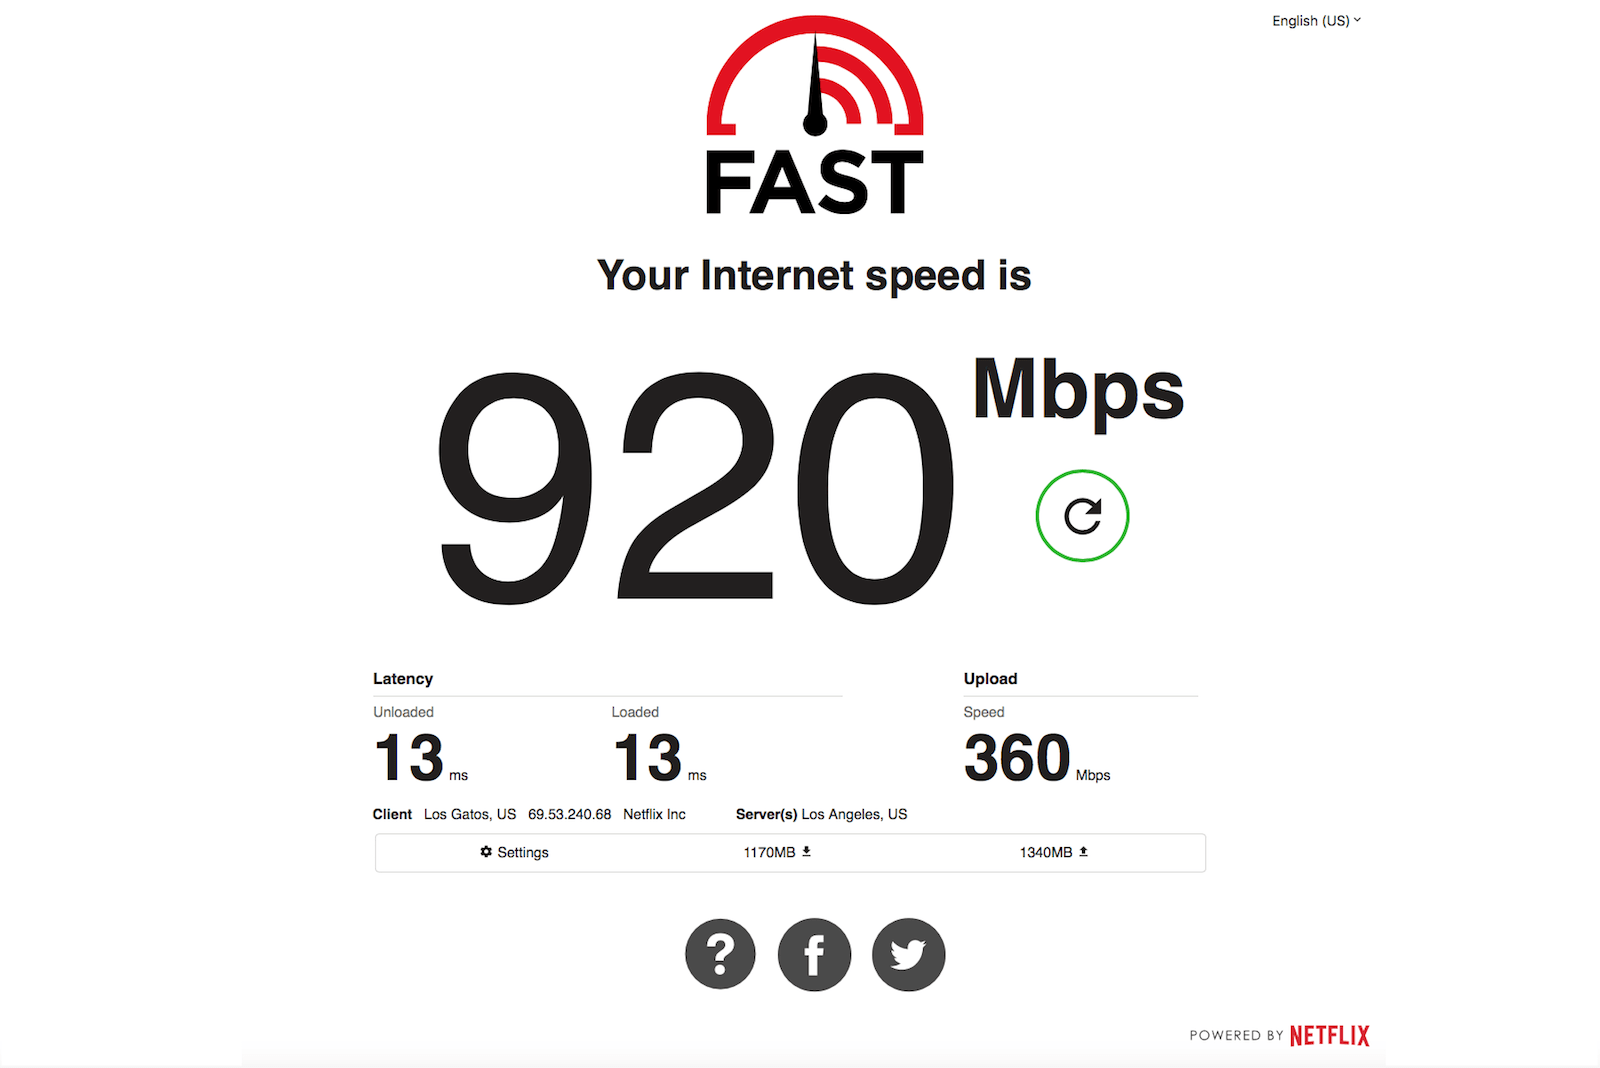 Netflix's Fast com now measures upload speed and latency